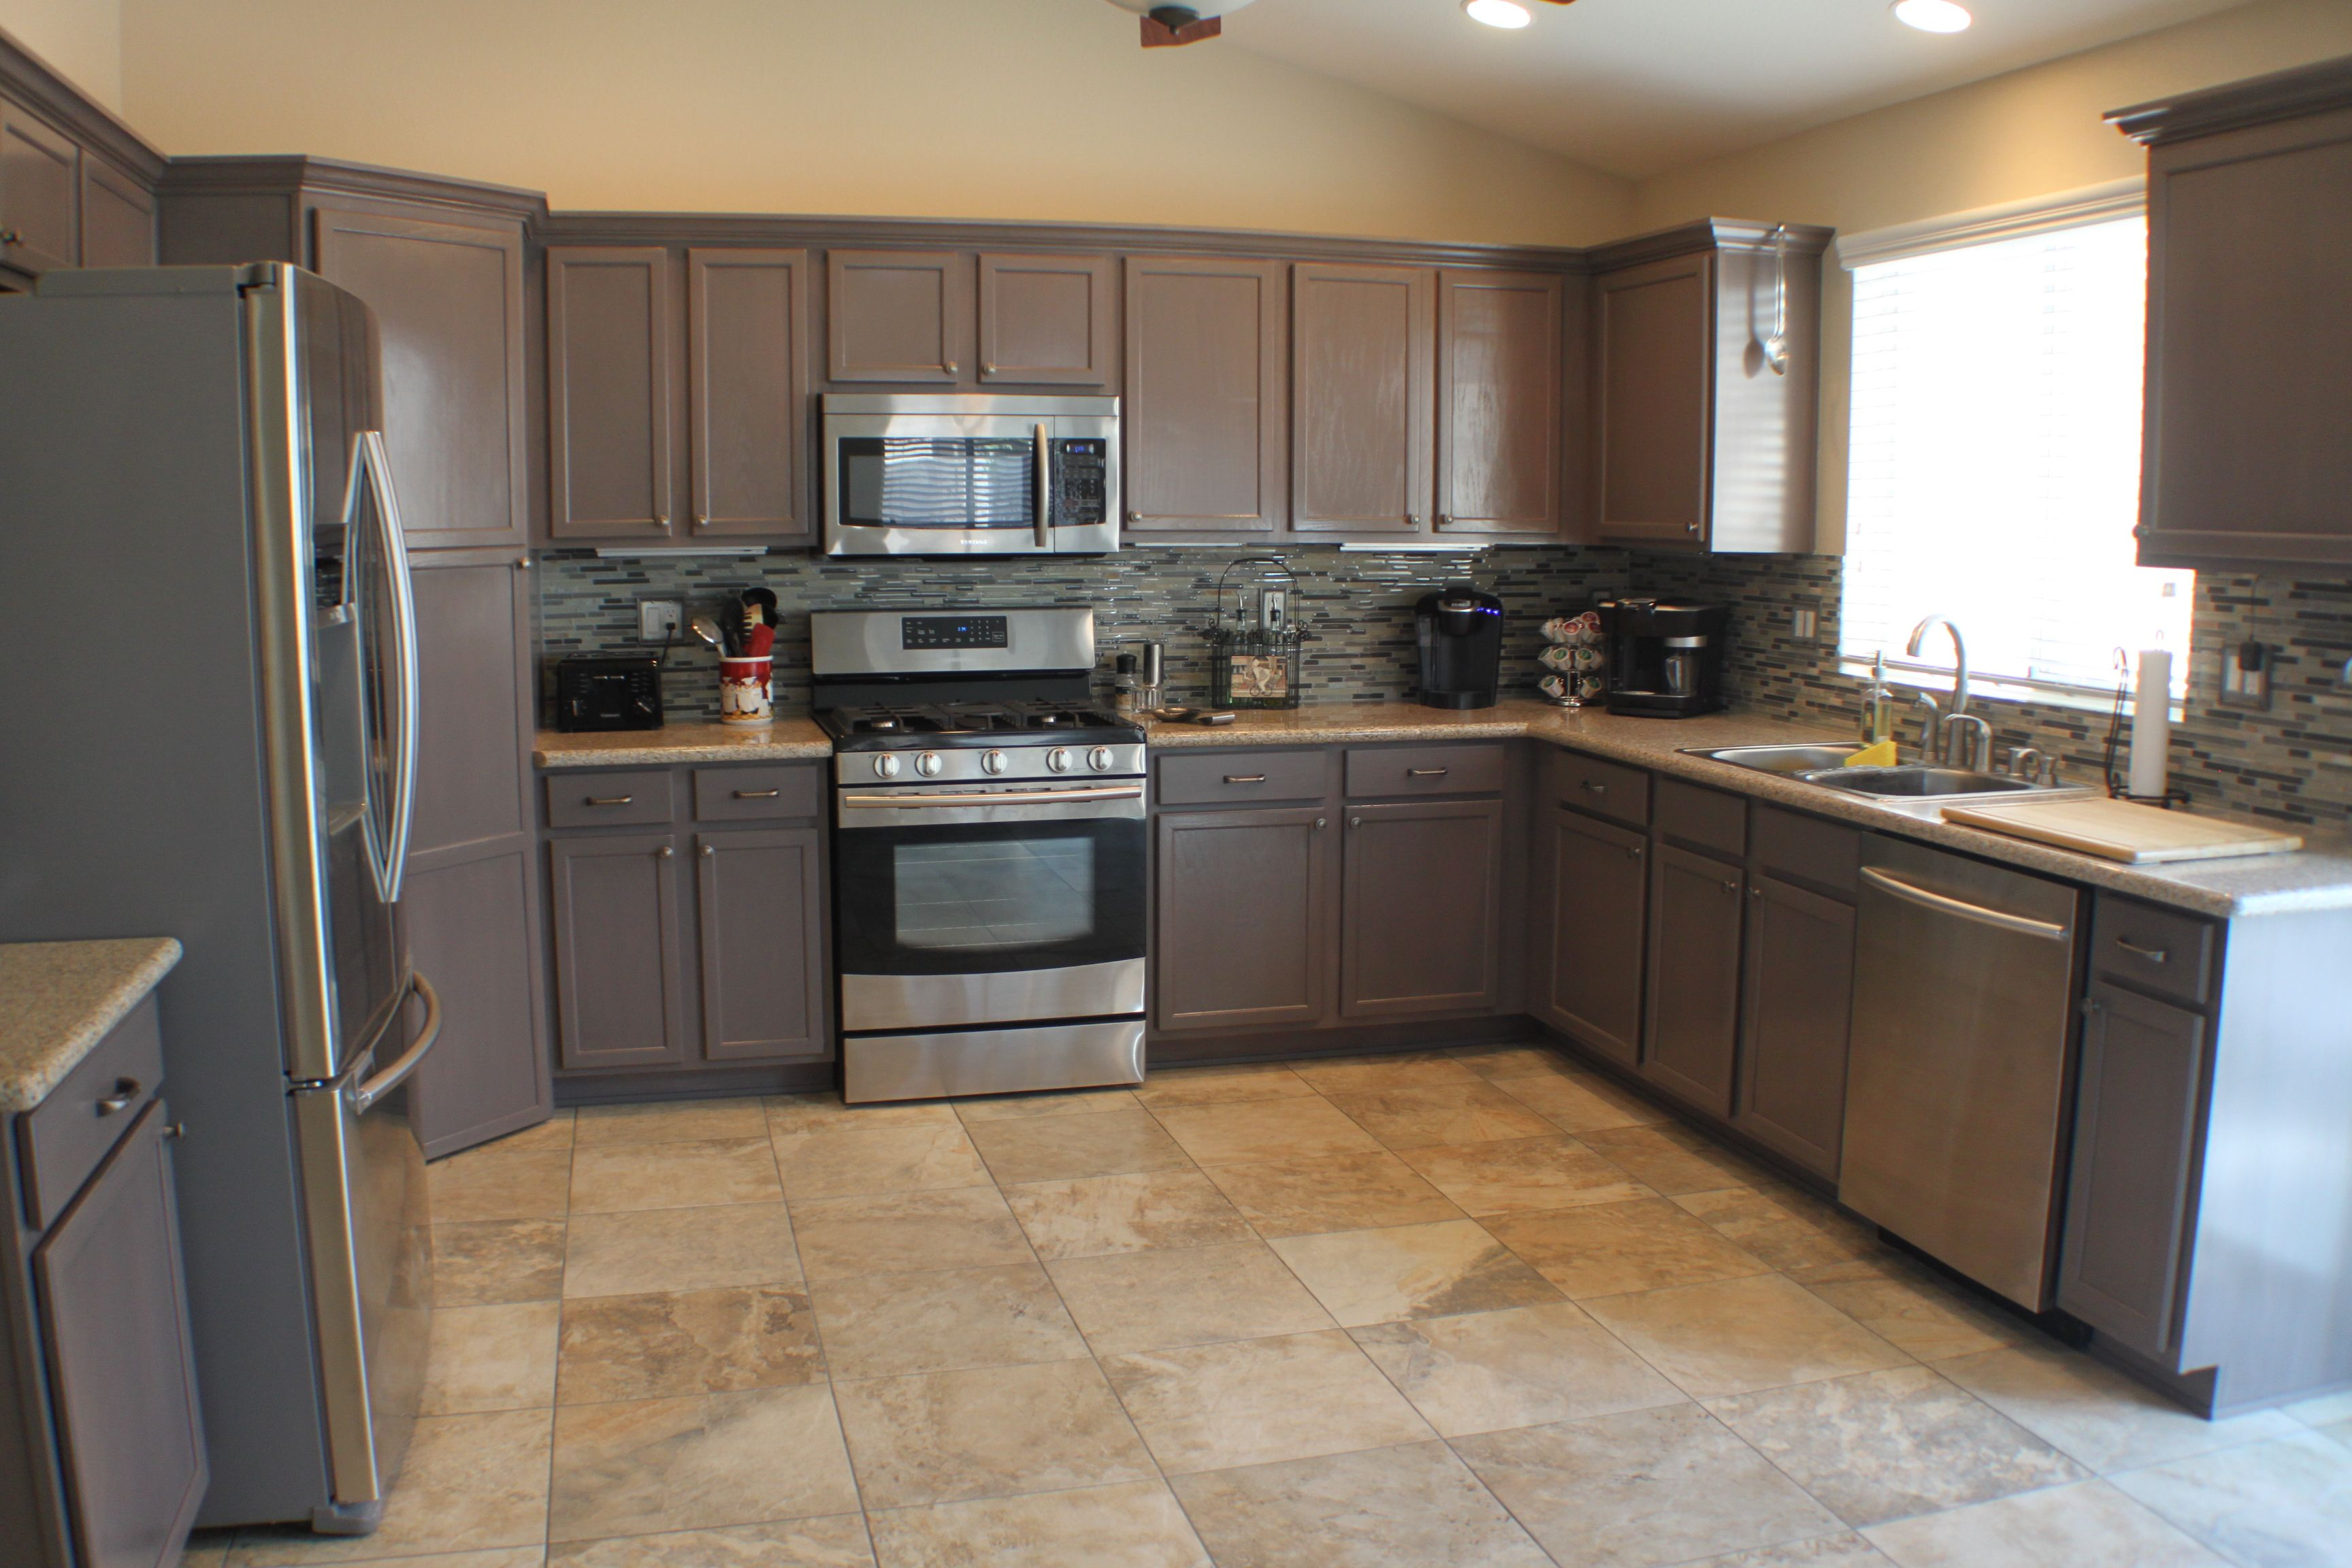 Trending Cabinet Color Grey Refinished By Las Vegas Remodel And Construction Home Remodeling Kitchen Remodel Remodel